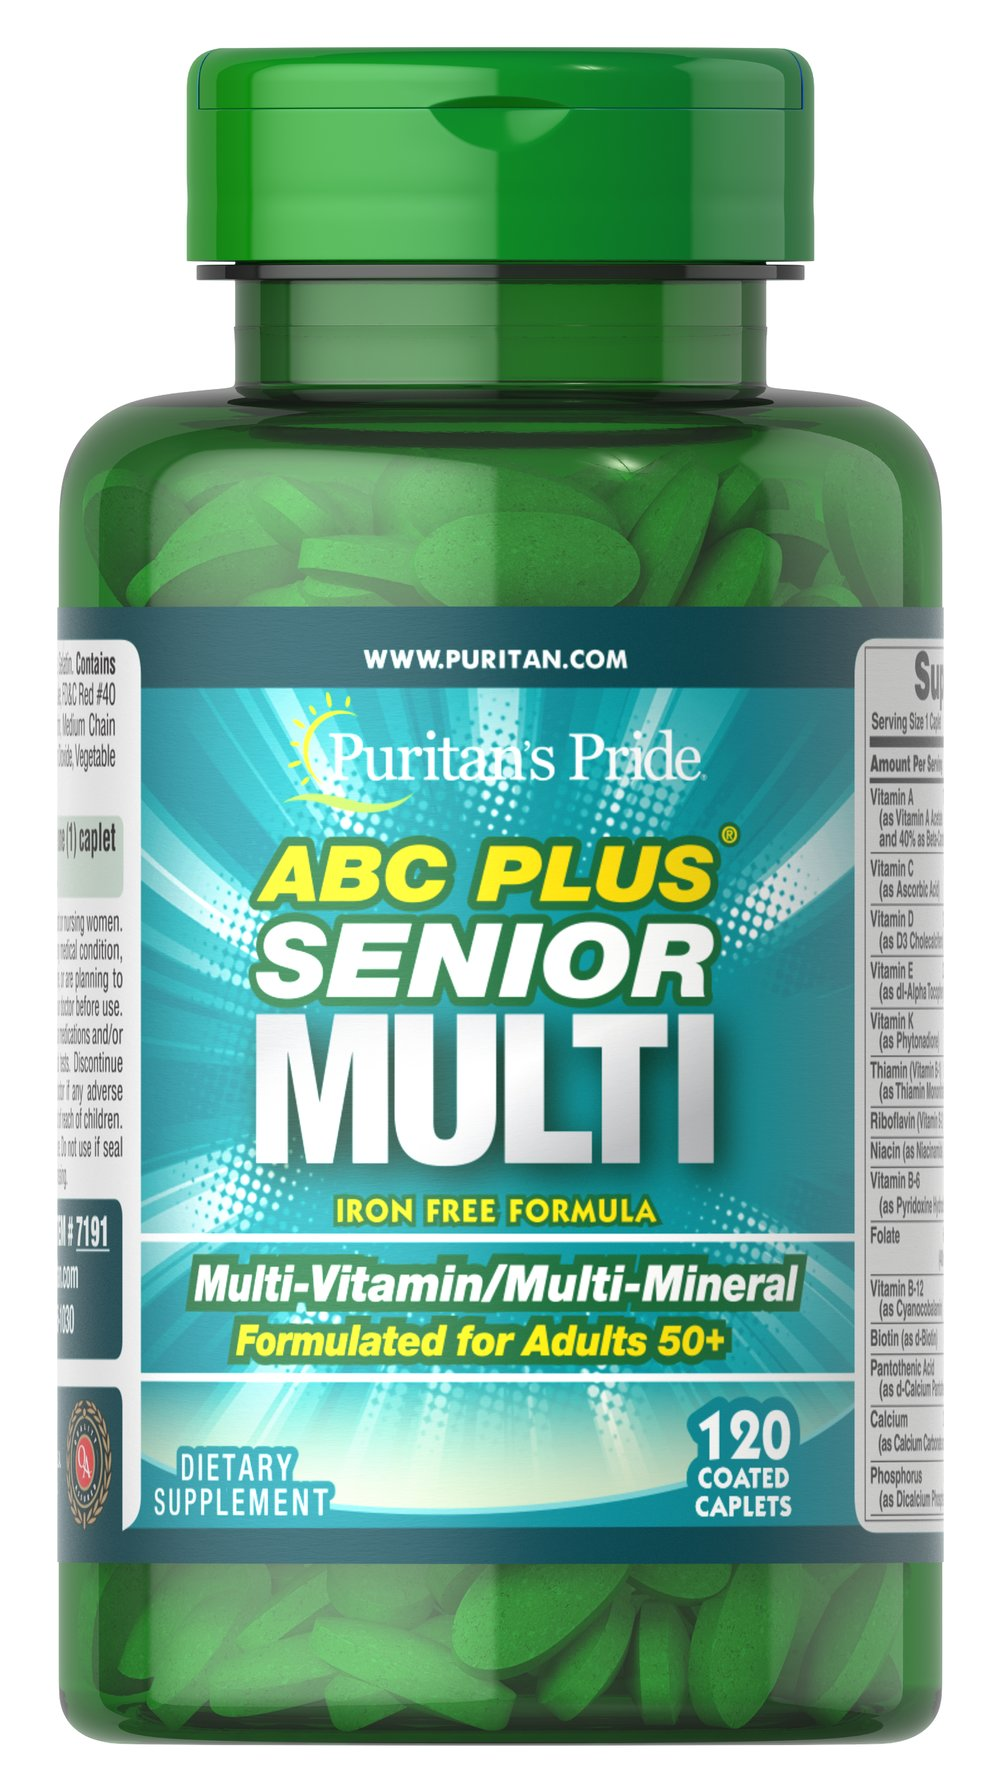 ABC Plus® Senior Multivitamin Multi-Mineral Formula <p>A special high-quality blend of vitamins and minerals formulated exclusively for adults 50 and over; delivers 100% or more daily values of Vitamins C, D, E, B-2, Niacin, Folic Acid and B-12. This is an iron-free, heart-healthy supplement. ** Compare and save!</p> 120 Caplets  $16.99